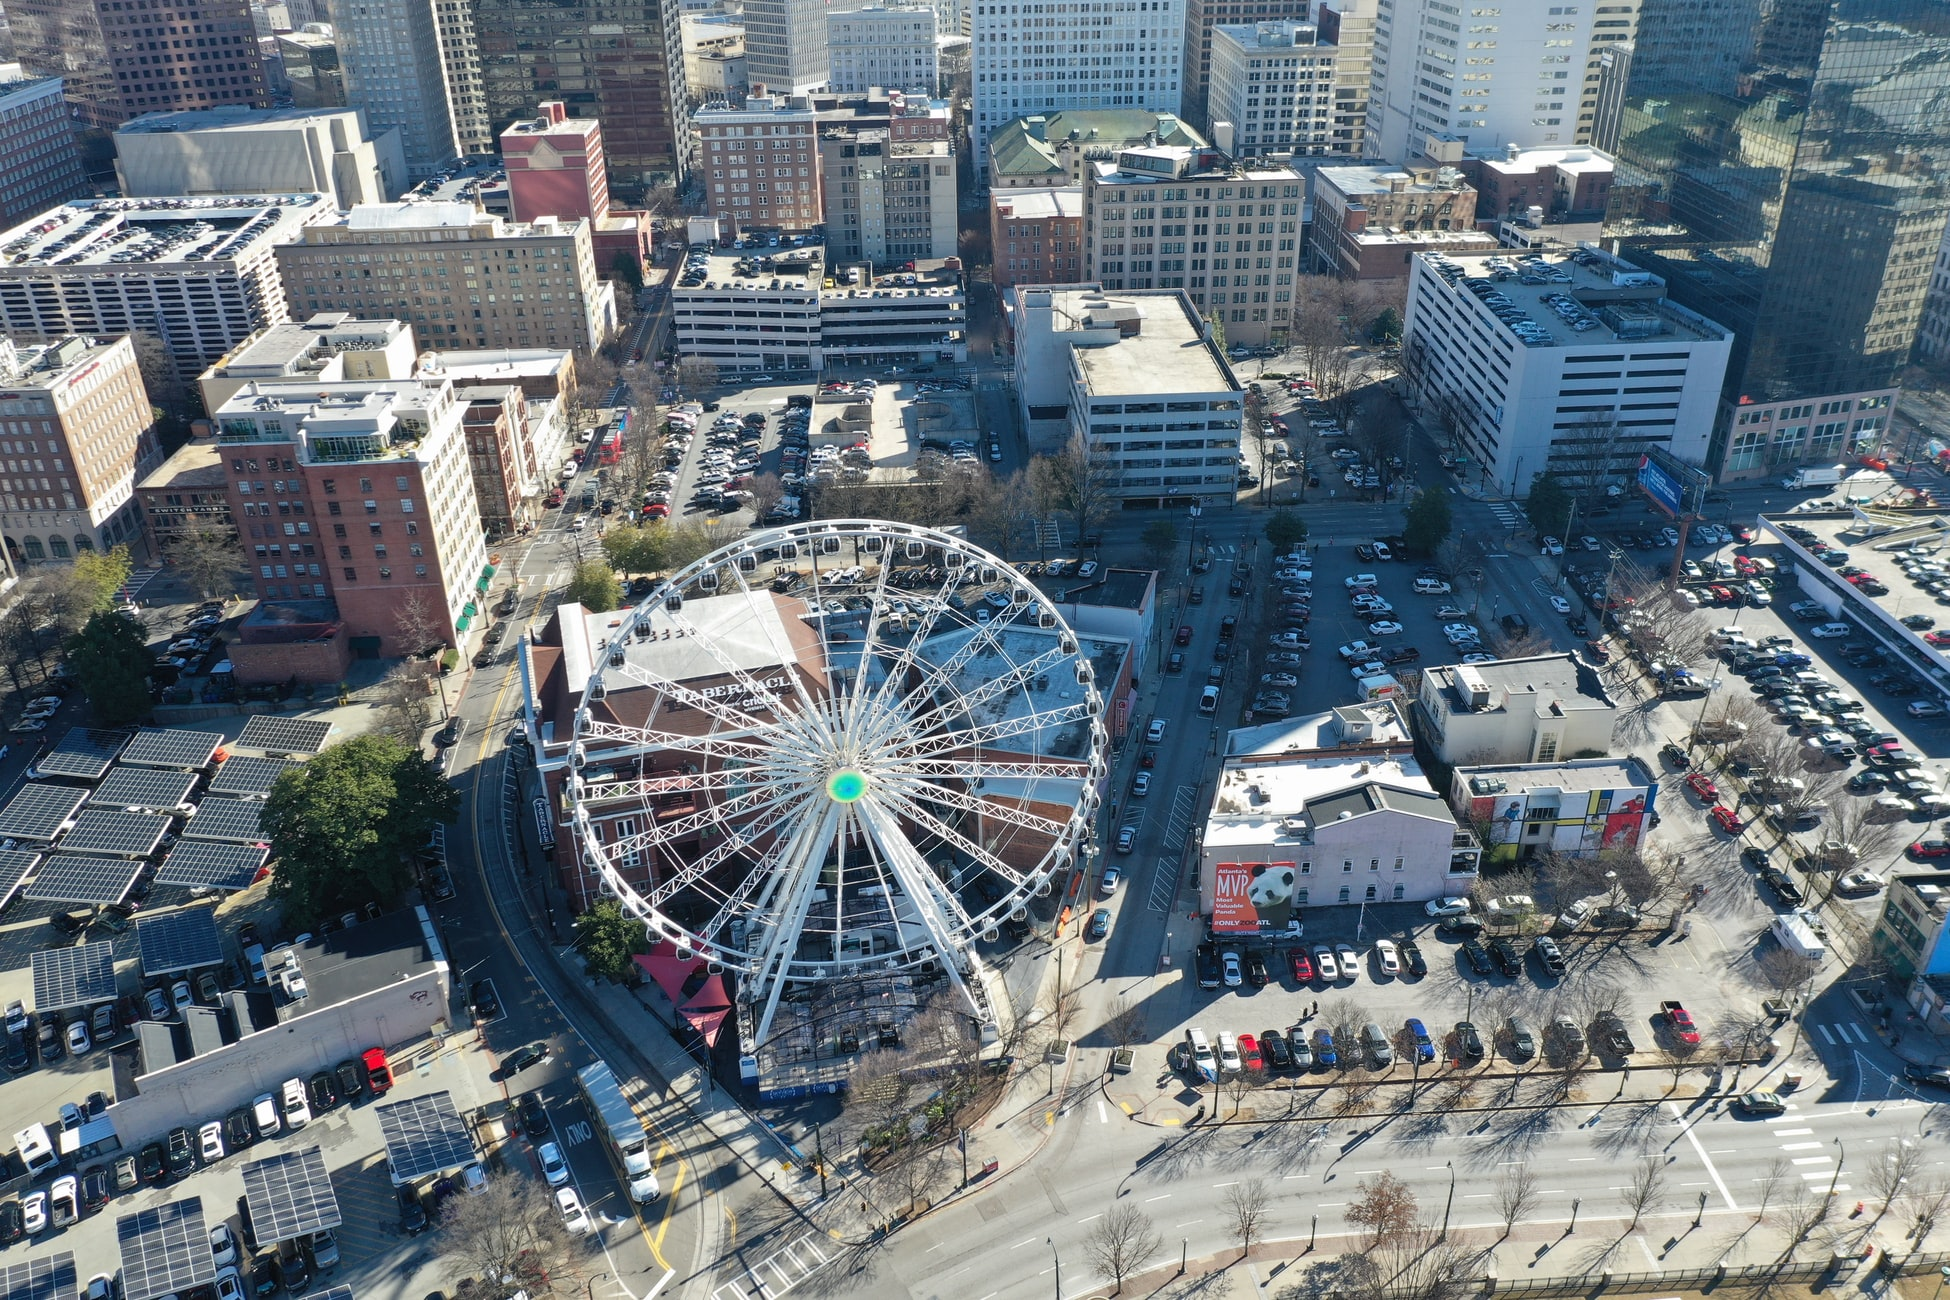 A ferry wheel - things to do in Atlanta